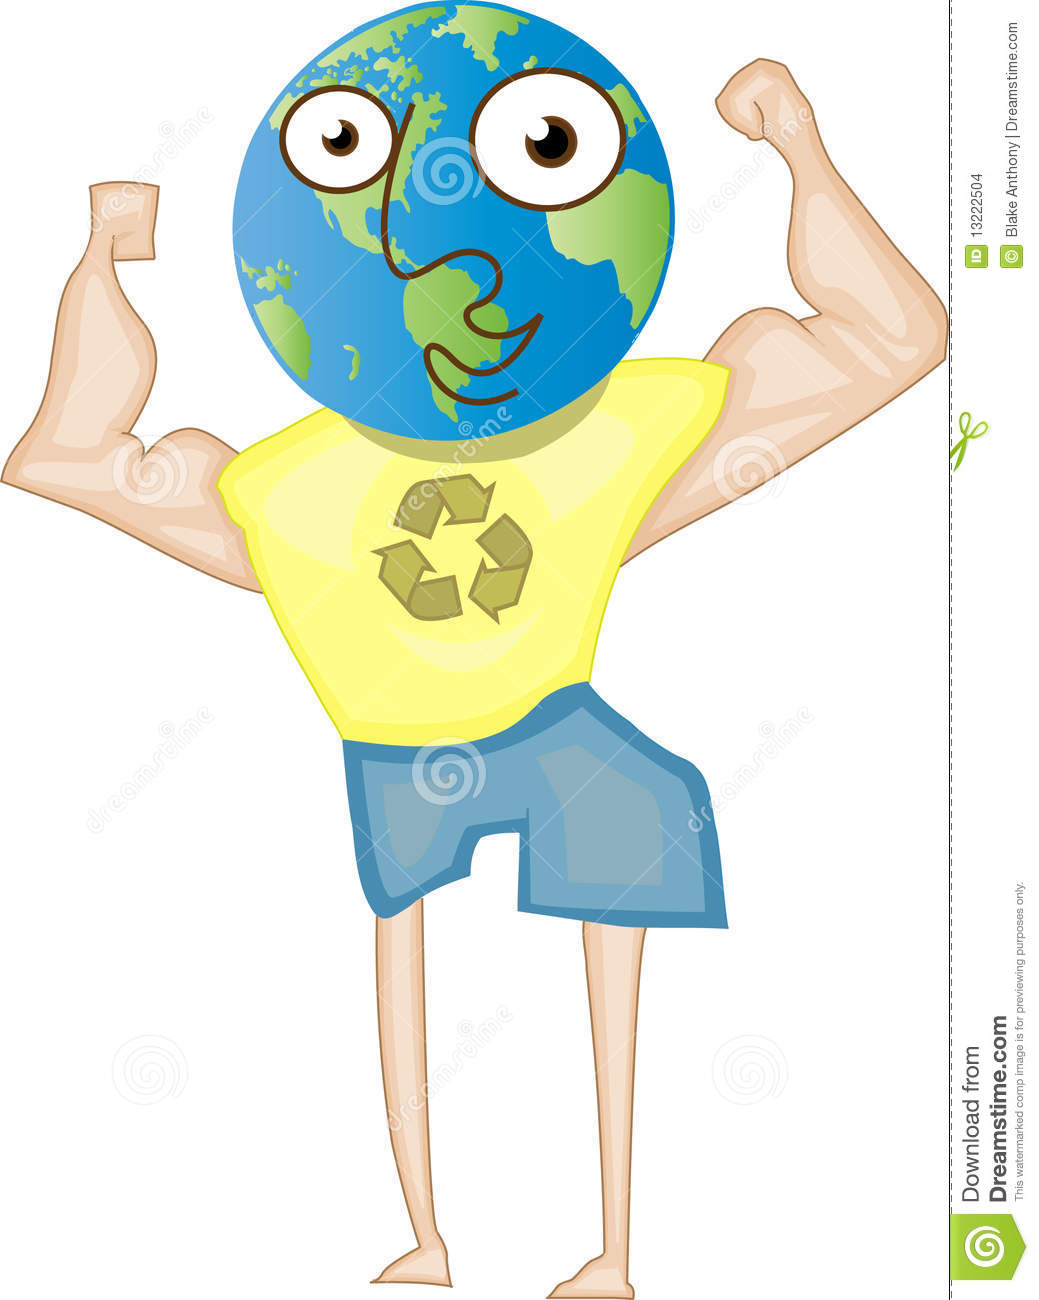 Recycle For A Better Healthier World Stock Images.